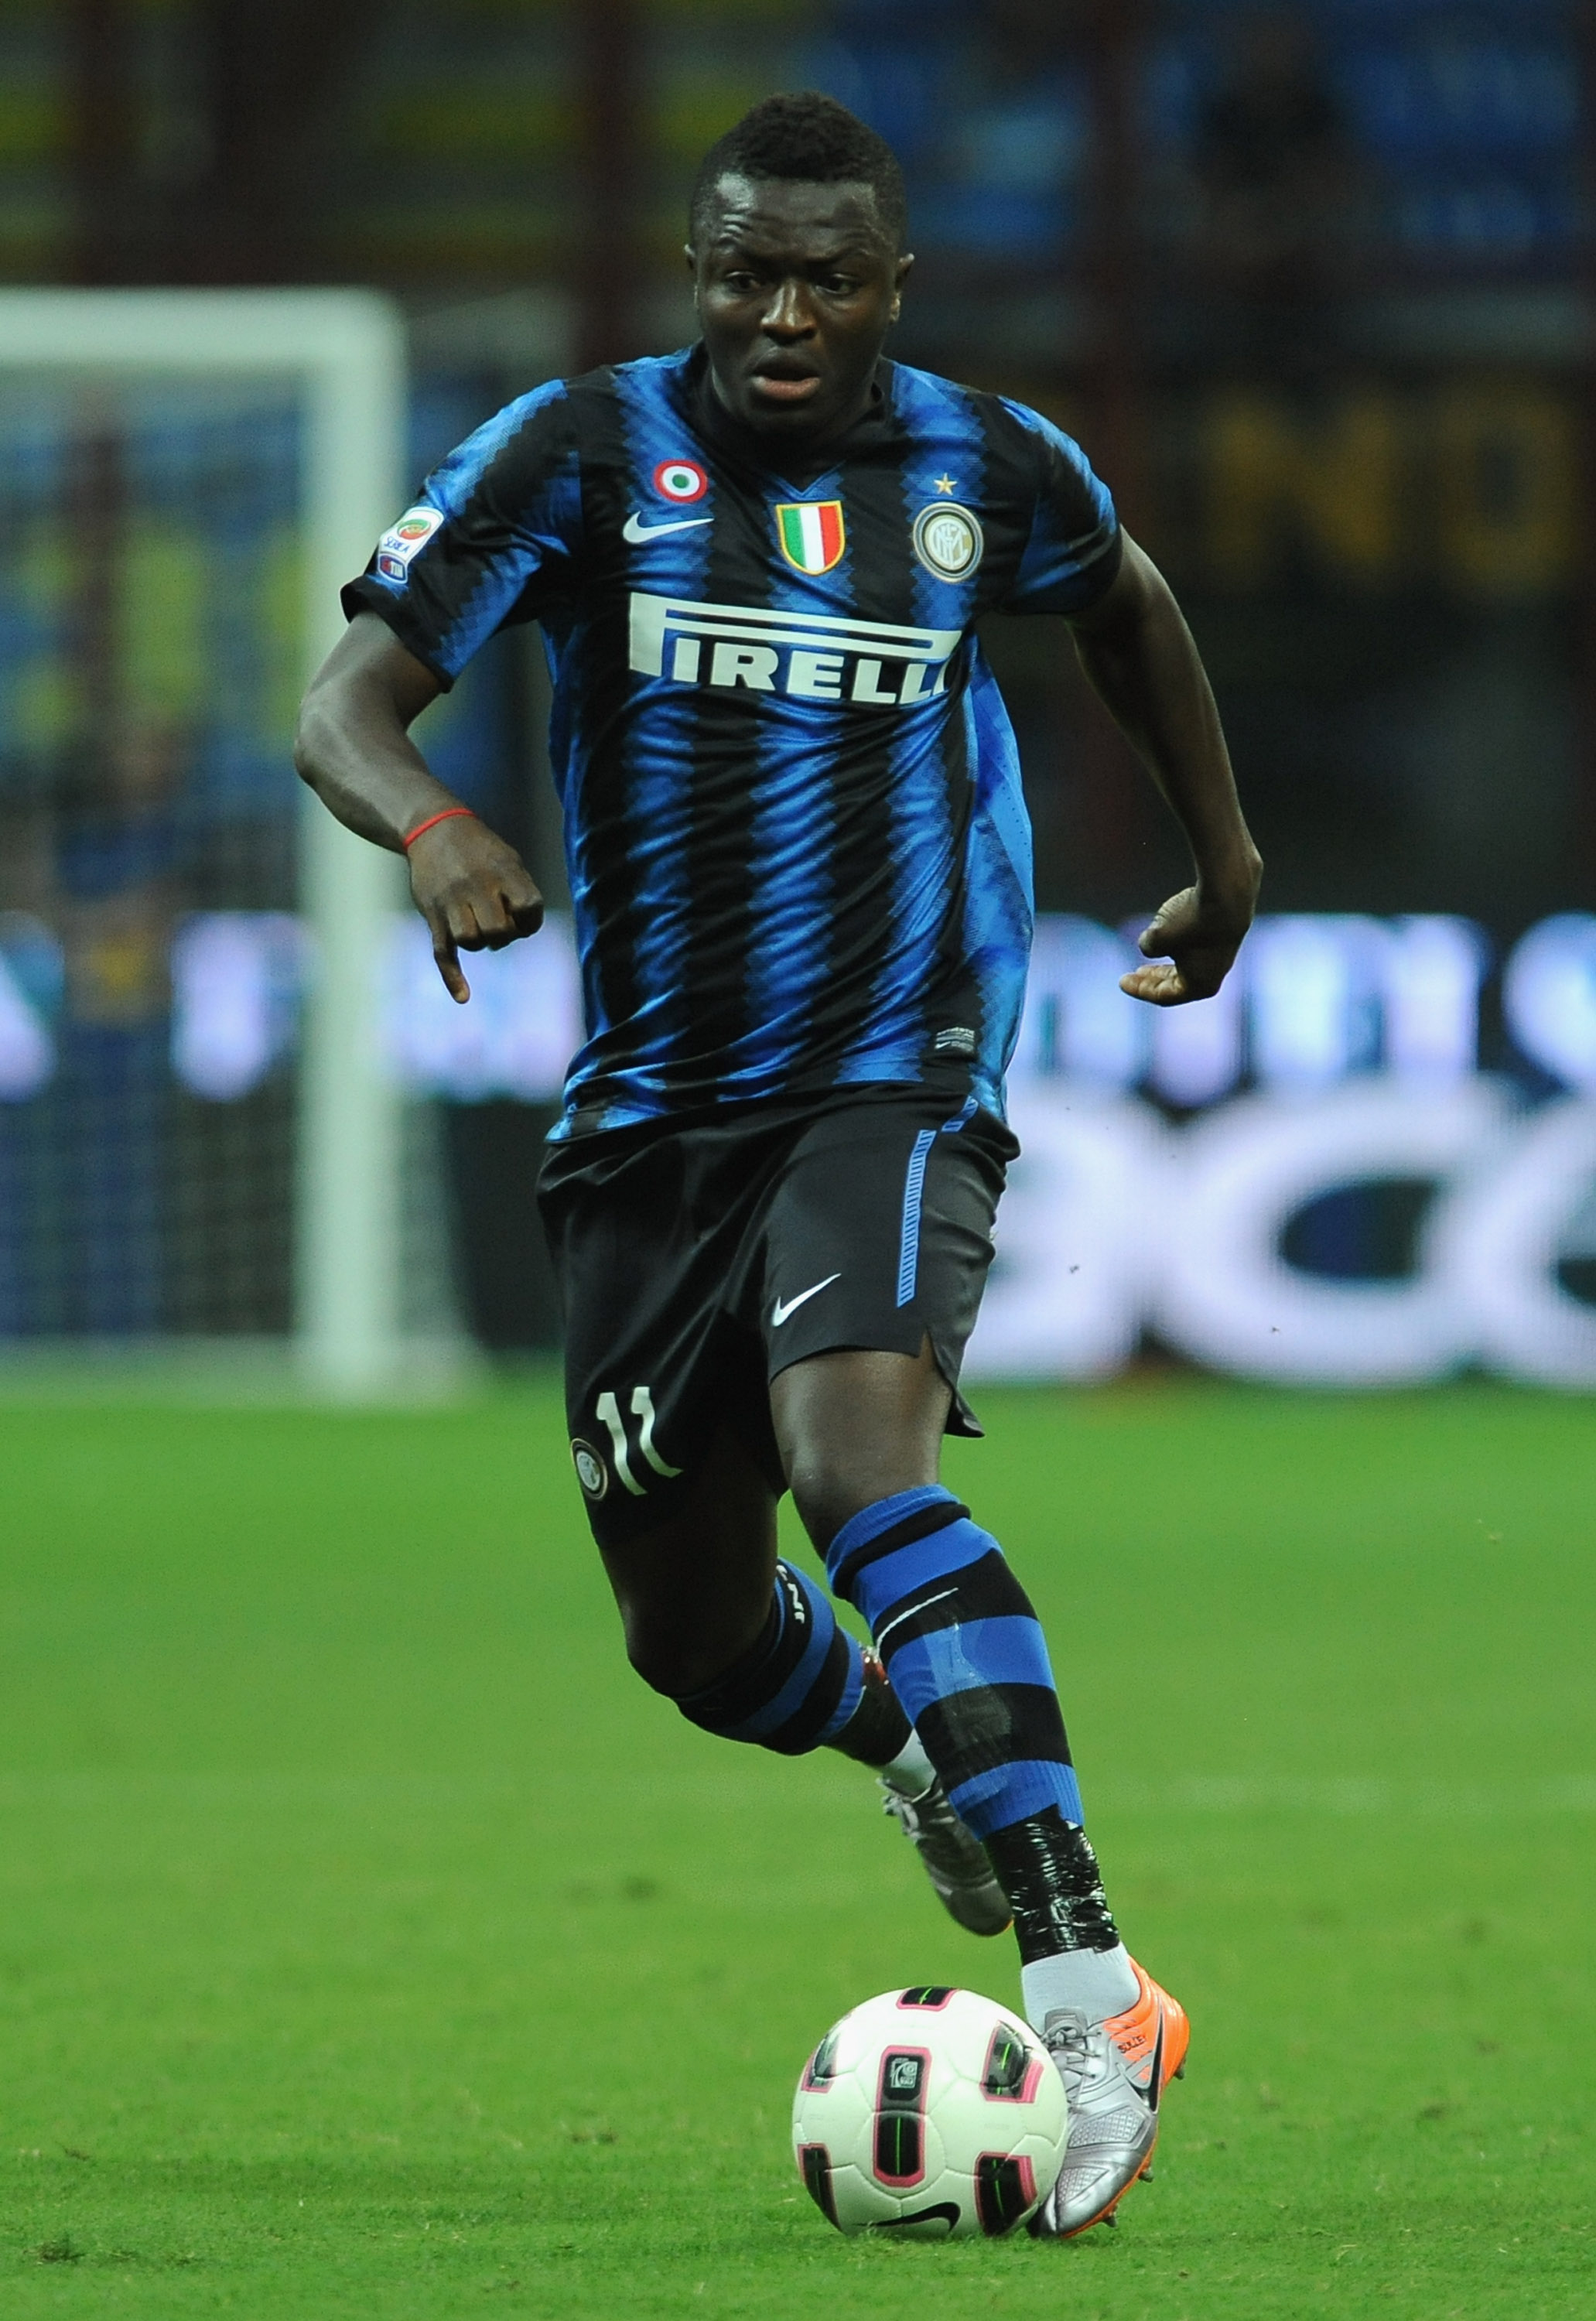 MILAN, ITALY - SEPTEMBER 11:  Sulley Ali Muntari of FC Internazionale in action during the Serie A match between FC Internazionale and Udinese Calcio at Stadio Giuseppe Meazza on September 11, 2010 in Milan, Italy.  (Photo by Valerio Pennicino/Getty Image